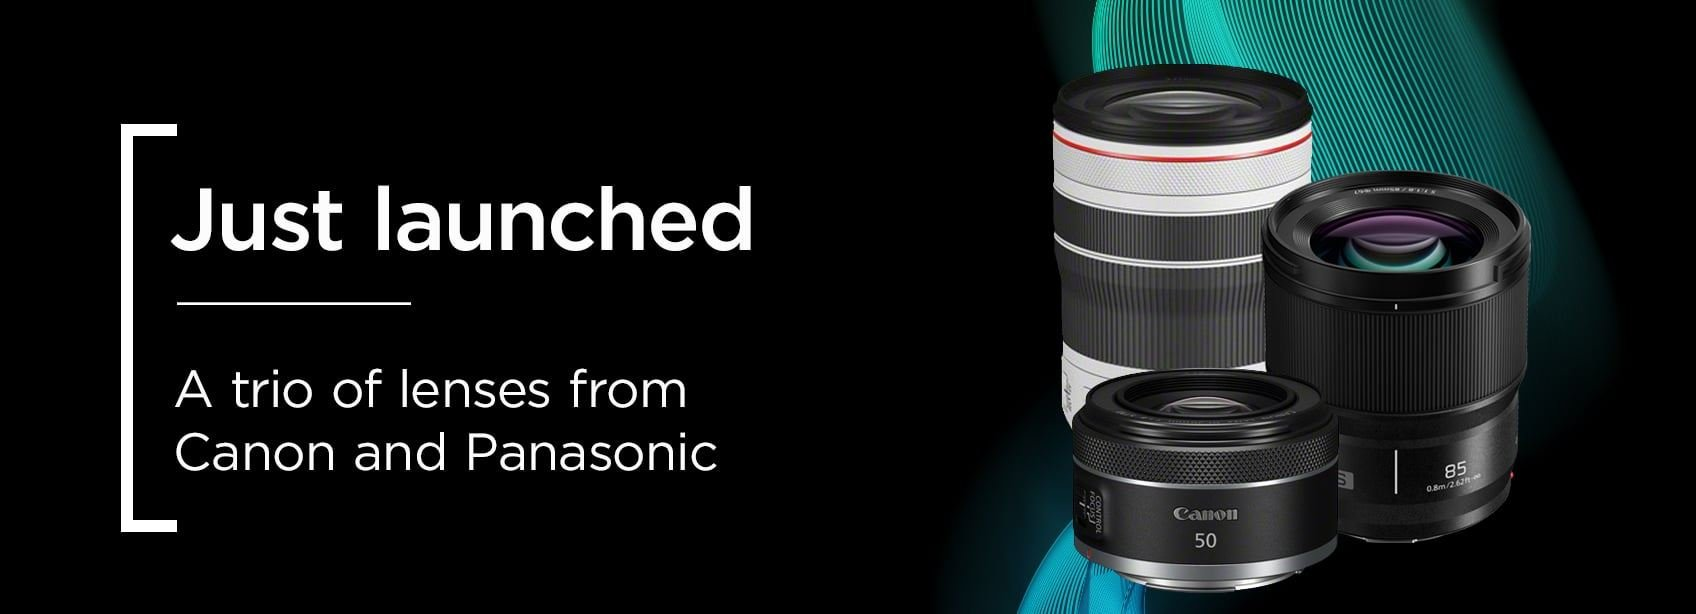 Just launched - A trio of lenses from Canon and Panasonic